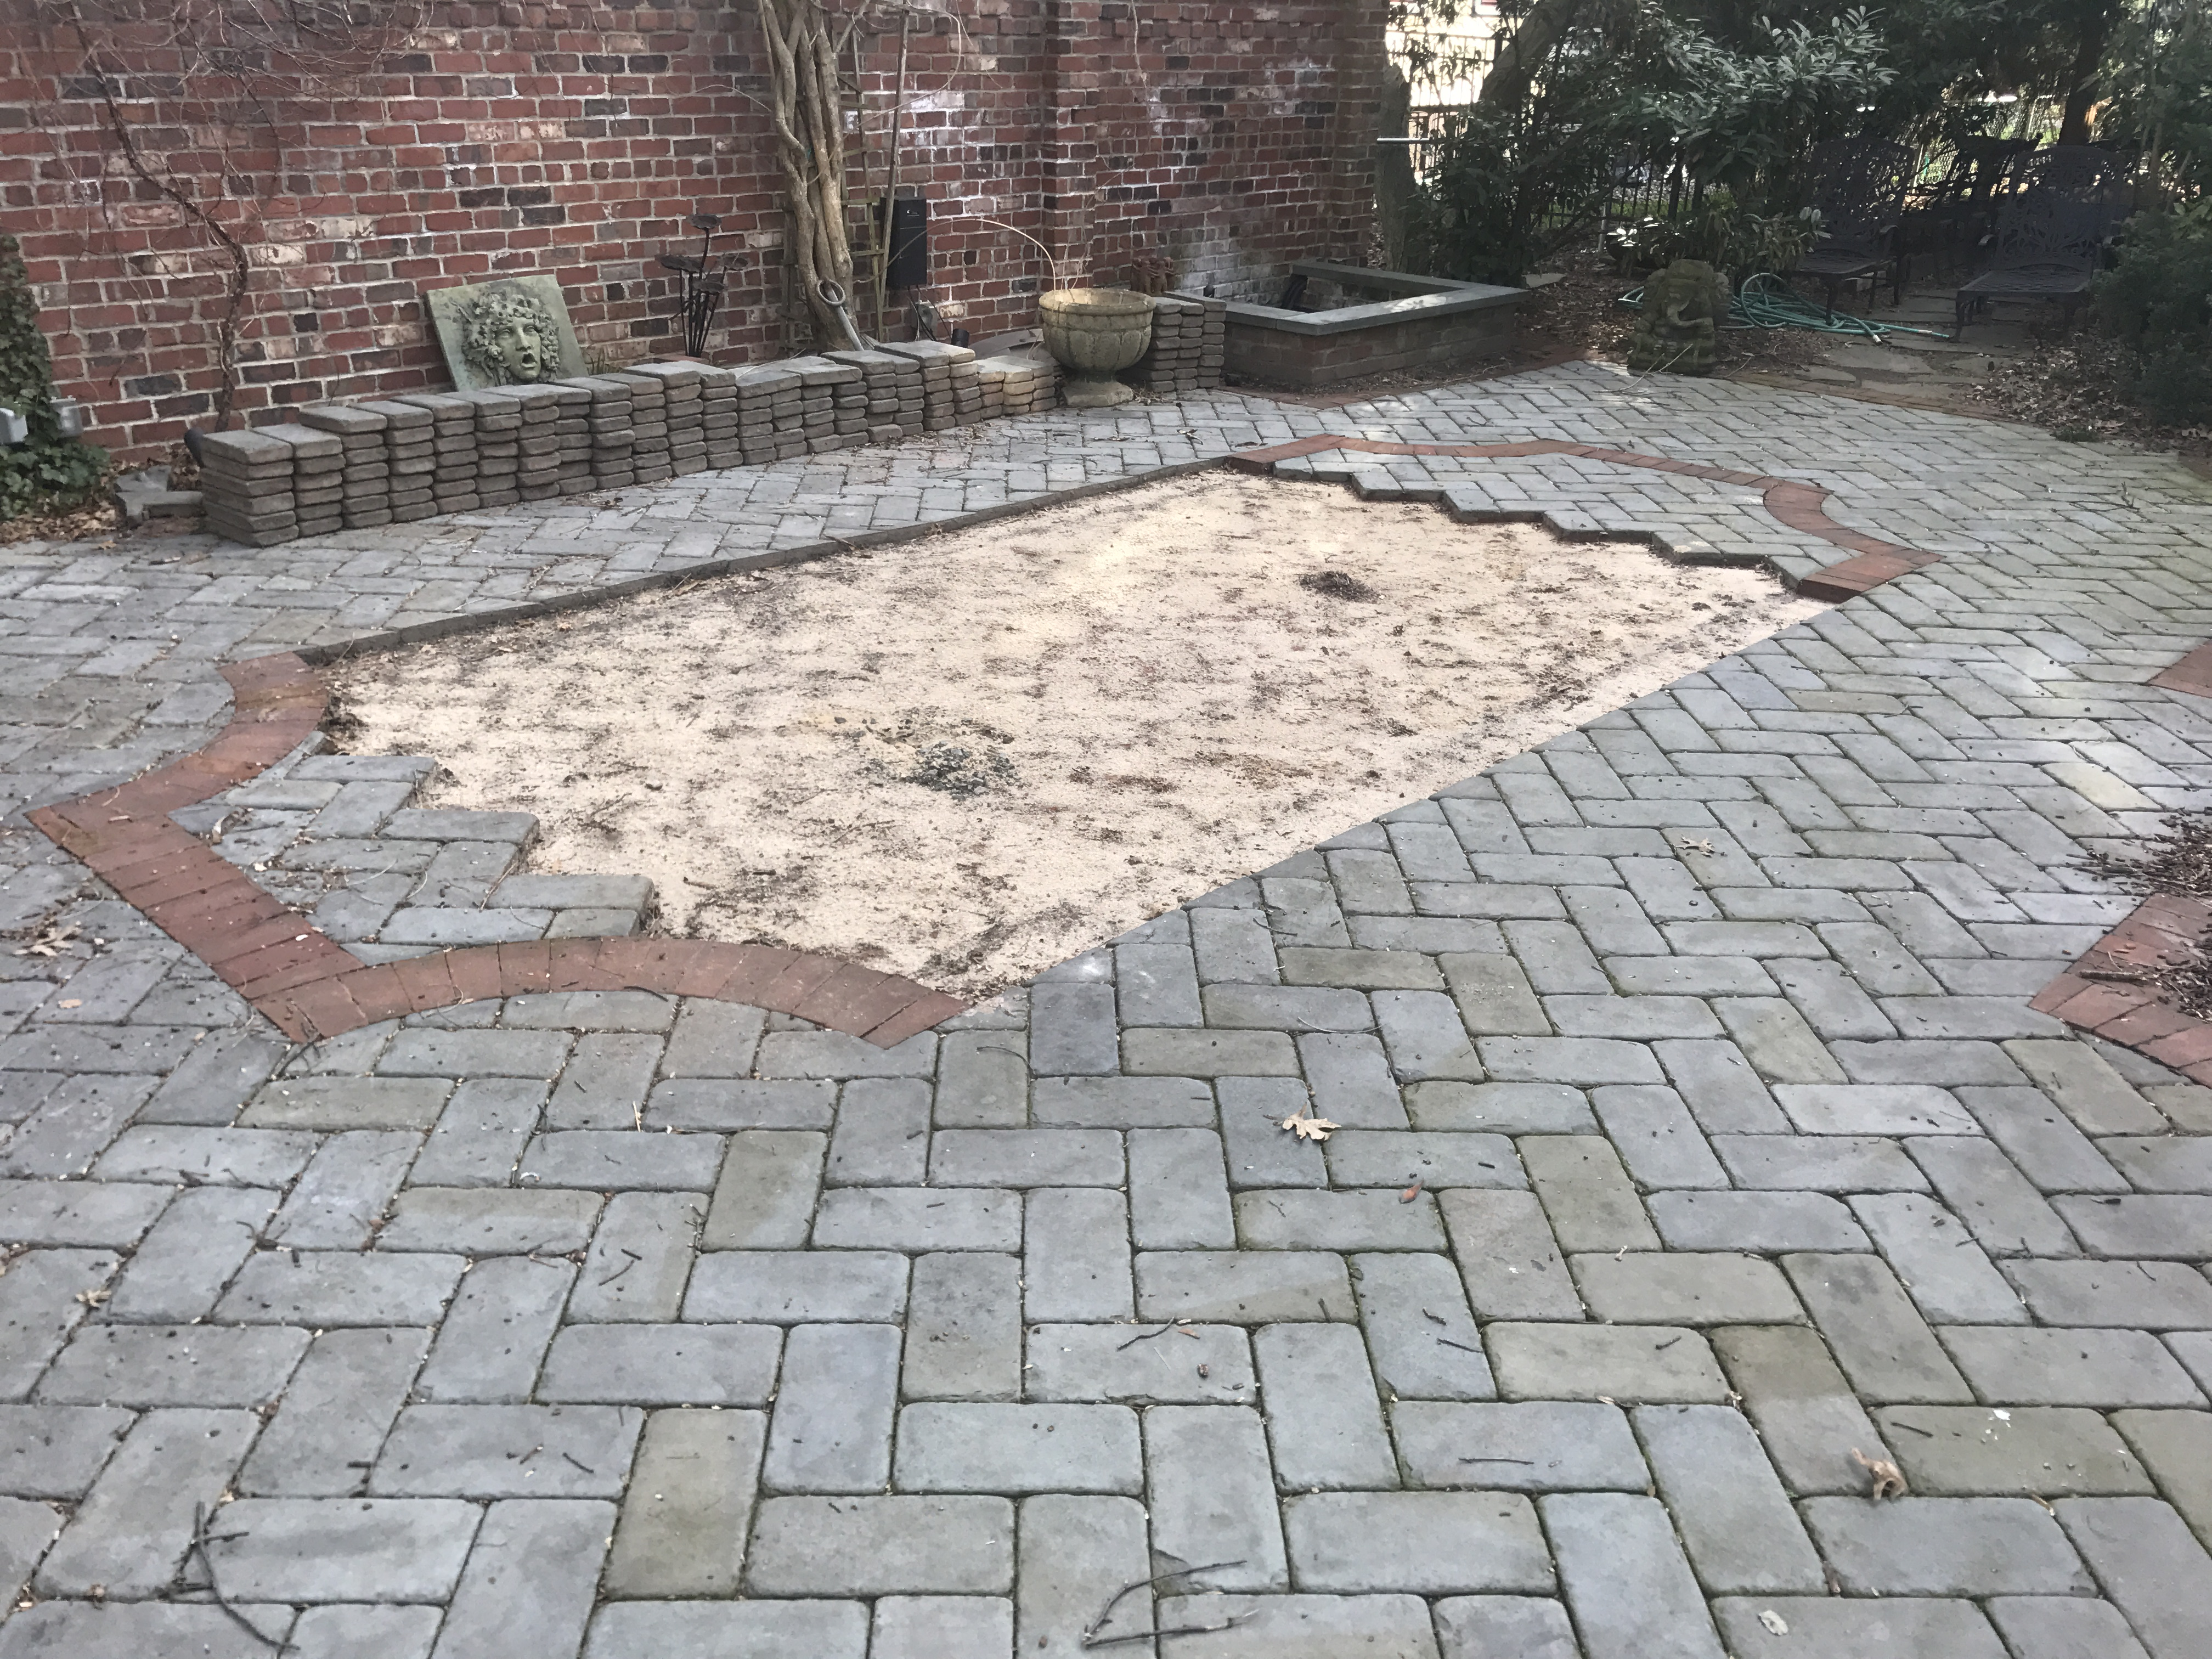 oil tank under patio.jpg